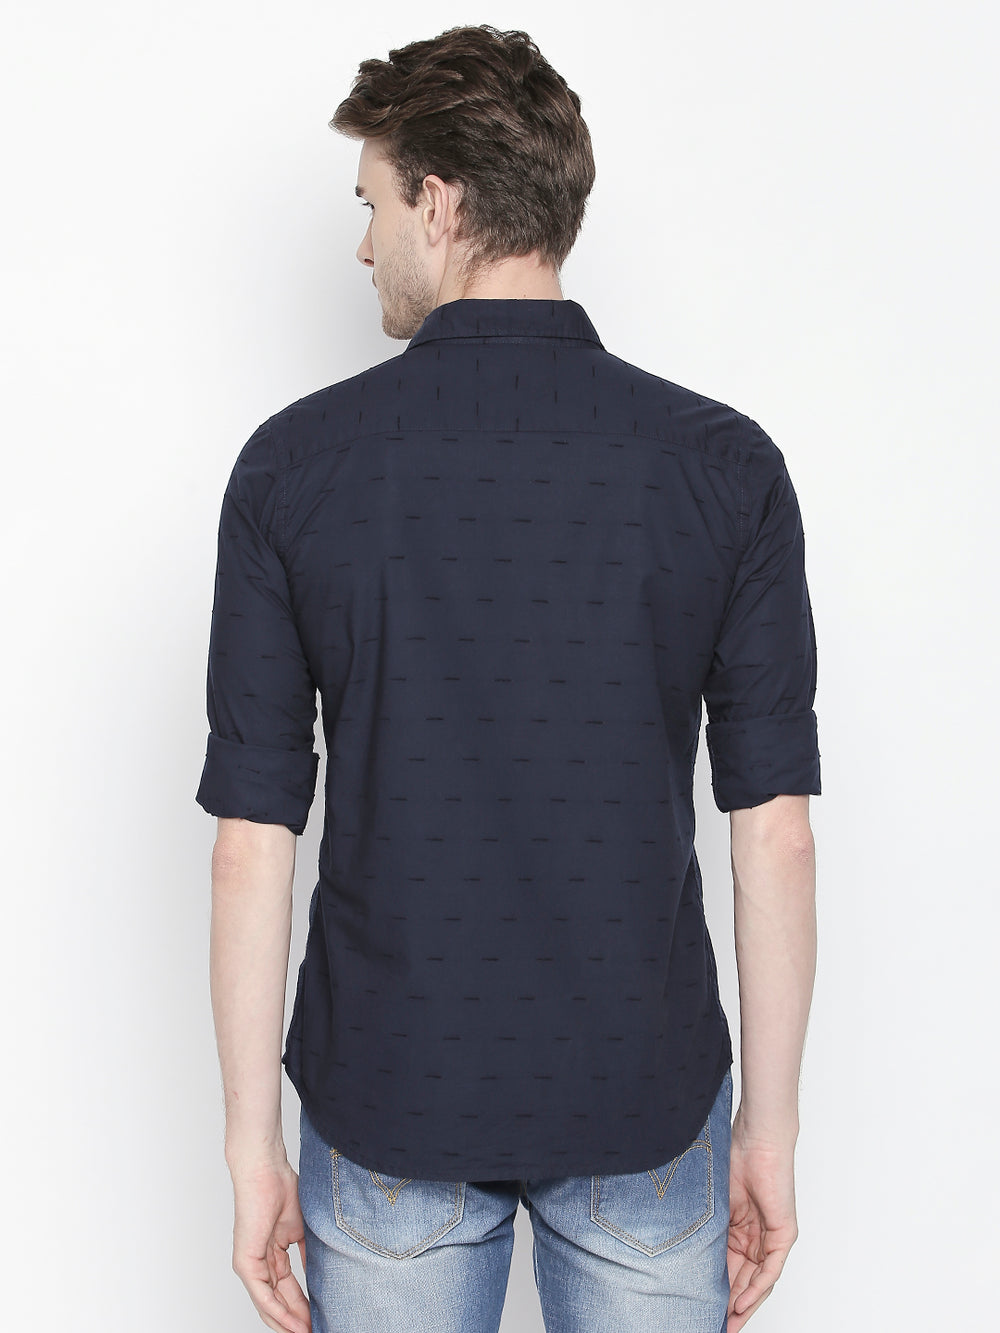 Disrupt Navy Full Sleeve Cotton Shirt for Men